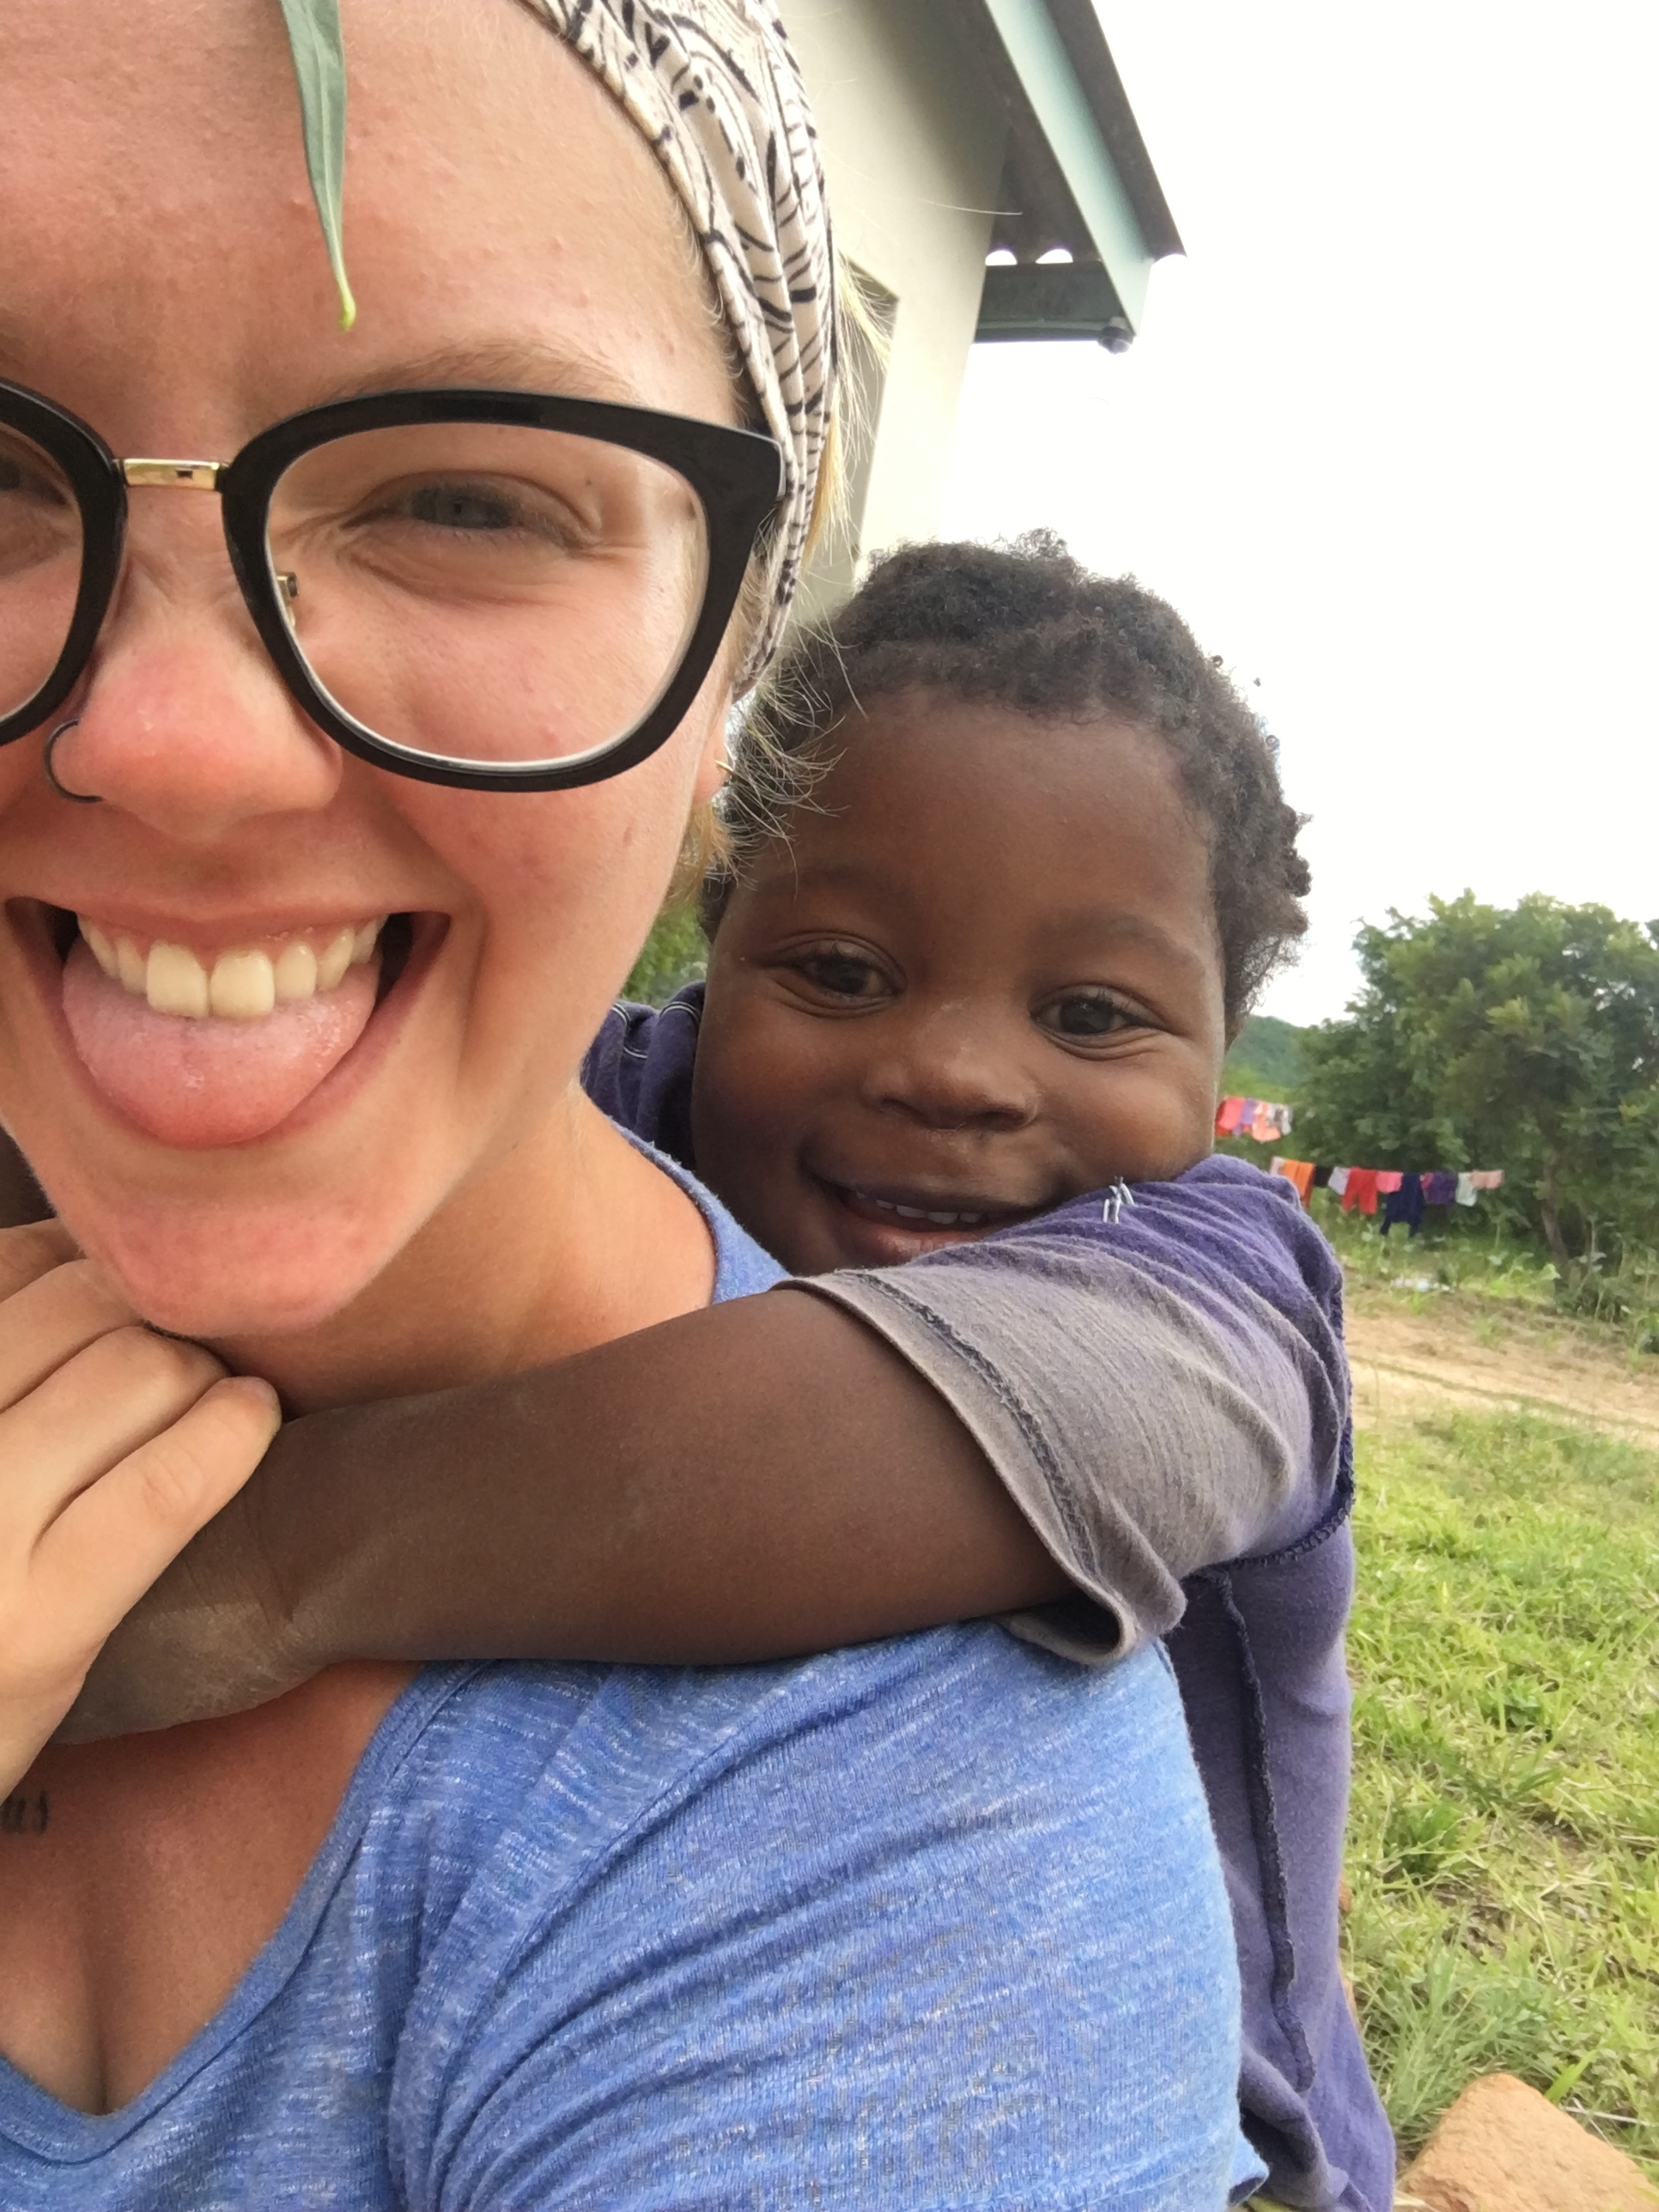 Student missionaries get to connect with kids of all ages overseas | PC: Keelia Trively